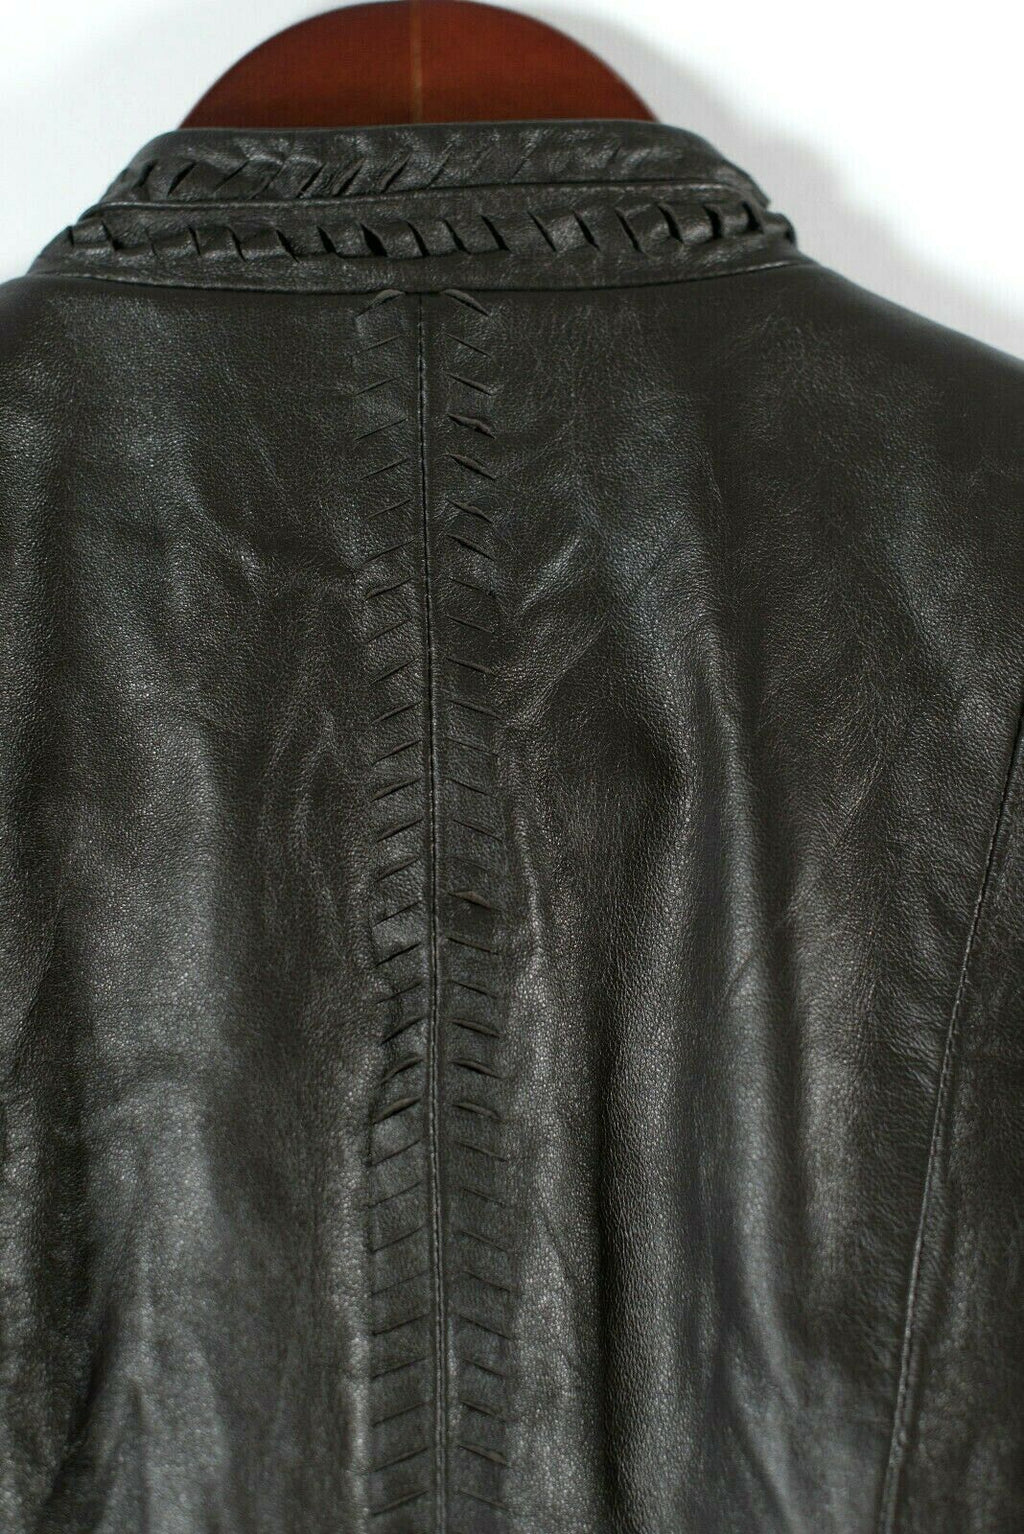 Elie Tahari Re Edition Womens Medium Brown Moto Jacket Hook Closure Soft Leather